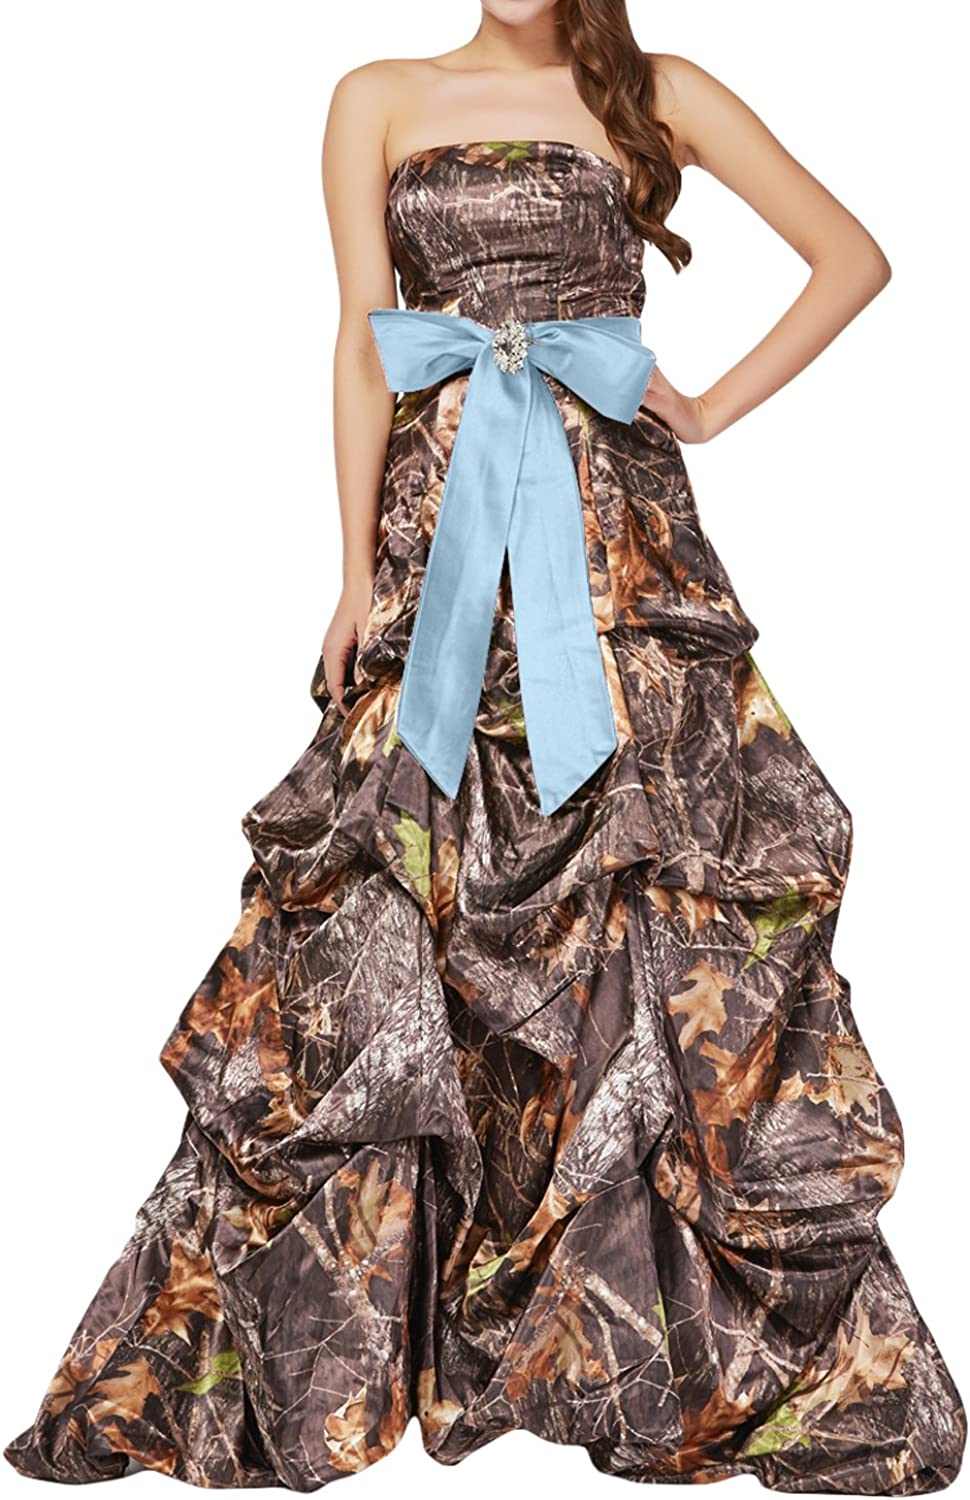 QY Bride Ruffled Quinceanera Ball Dresses Camo Prom Gowns Long